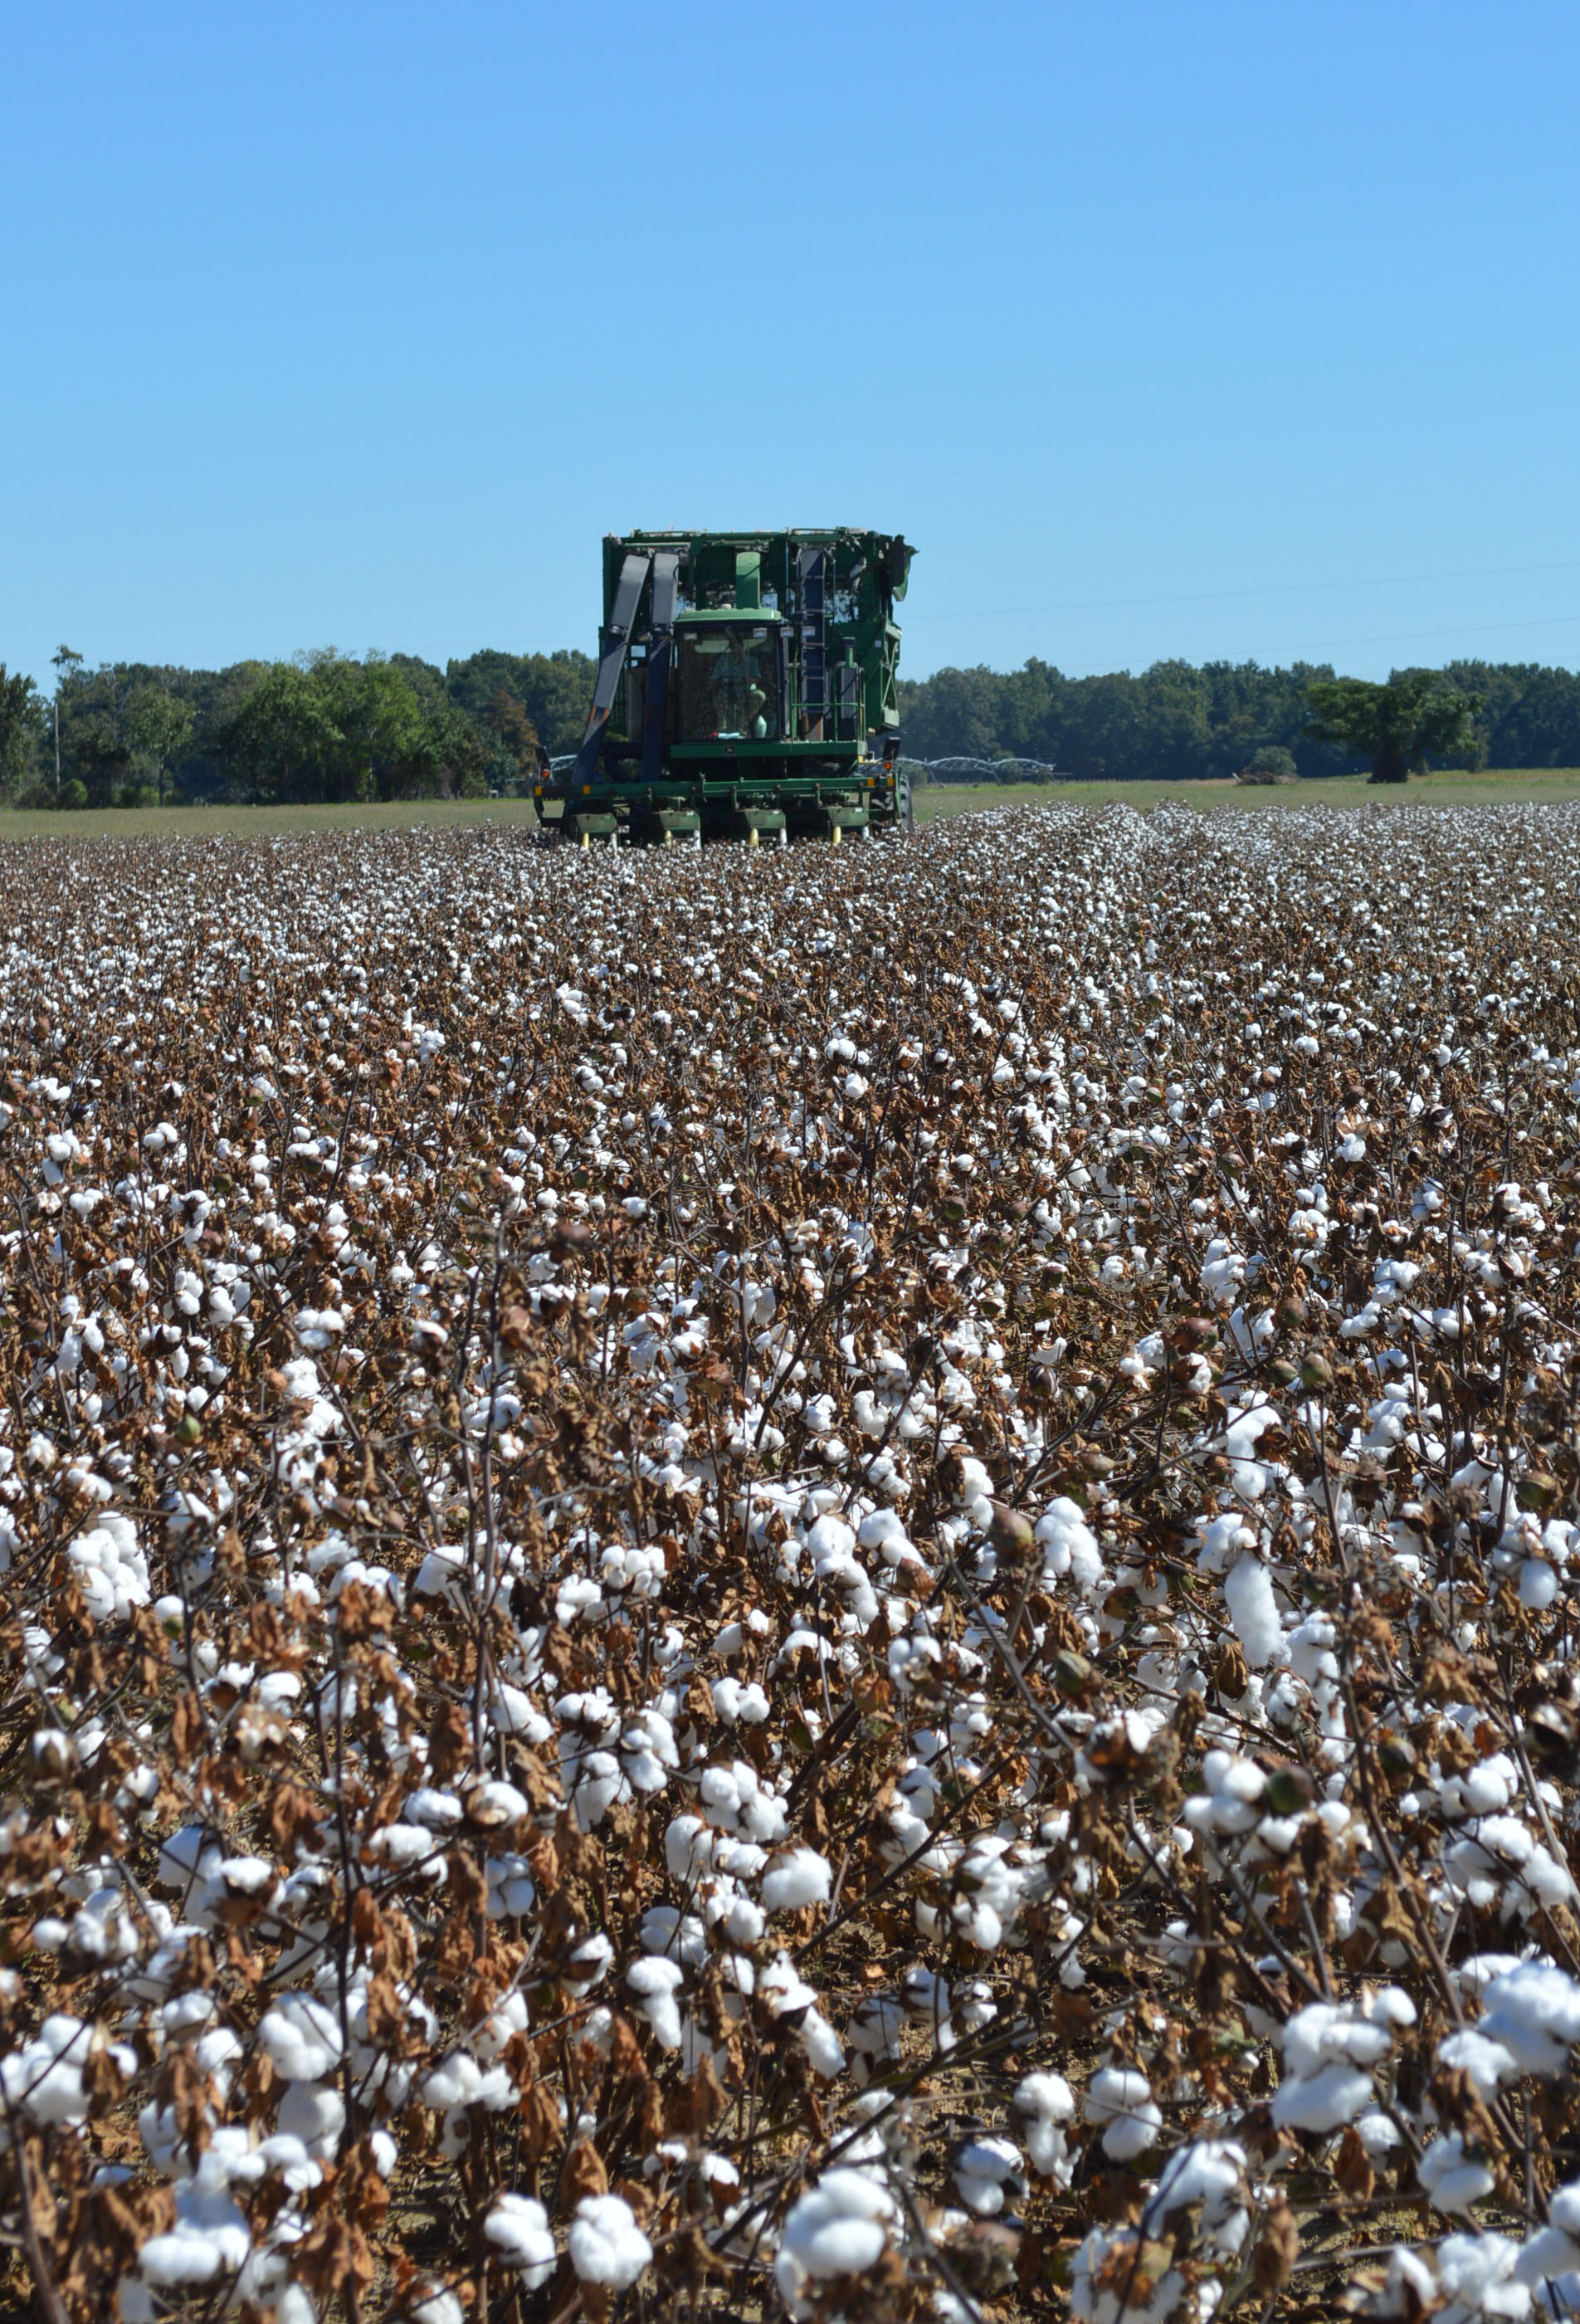 Cotton yields could reach record